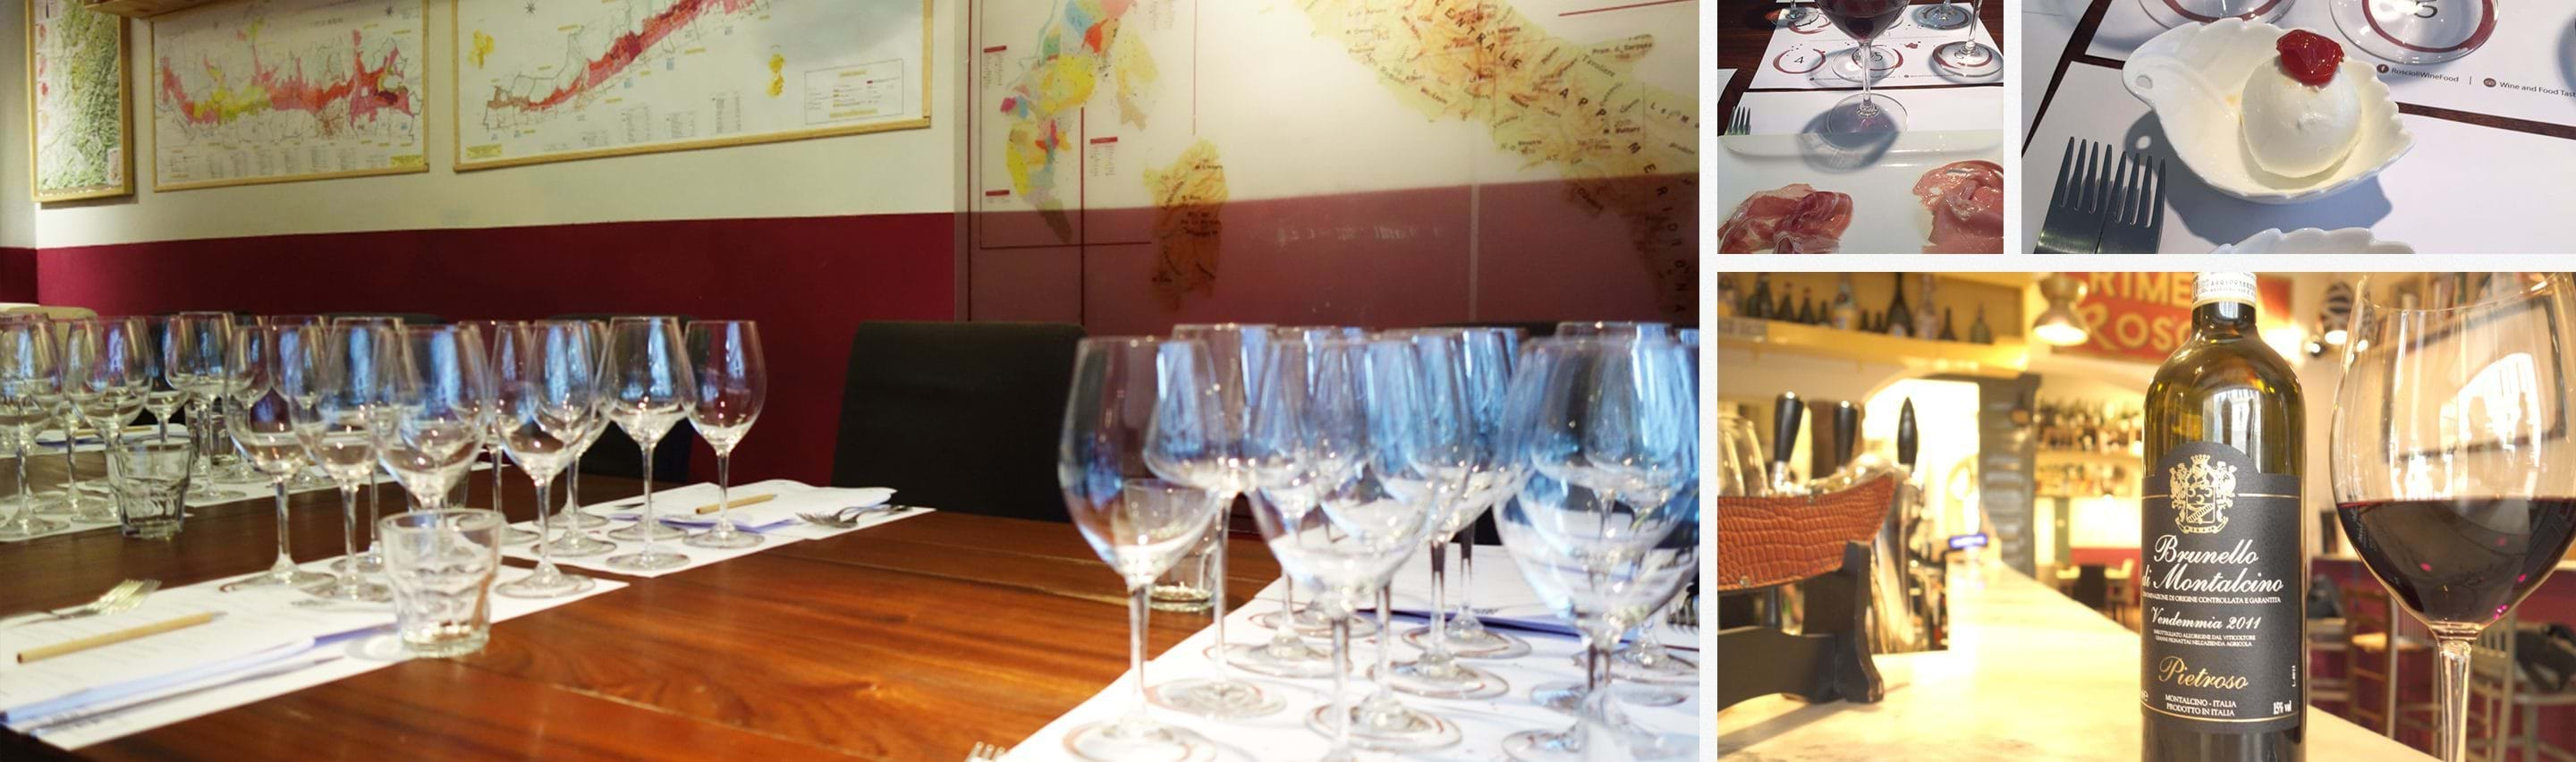 Gourmet Wine Tasting and Food Pairing Class